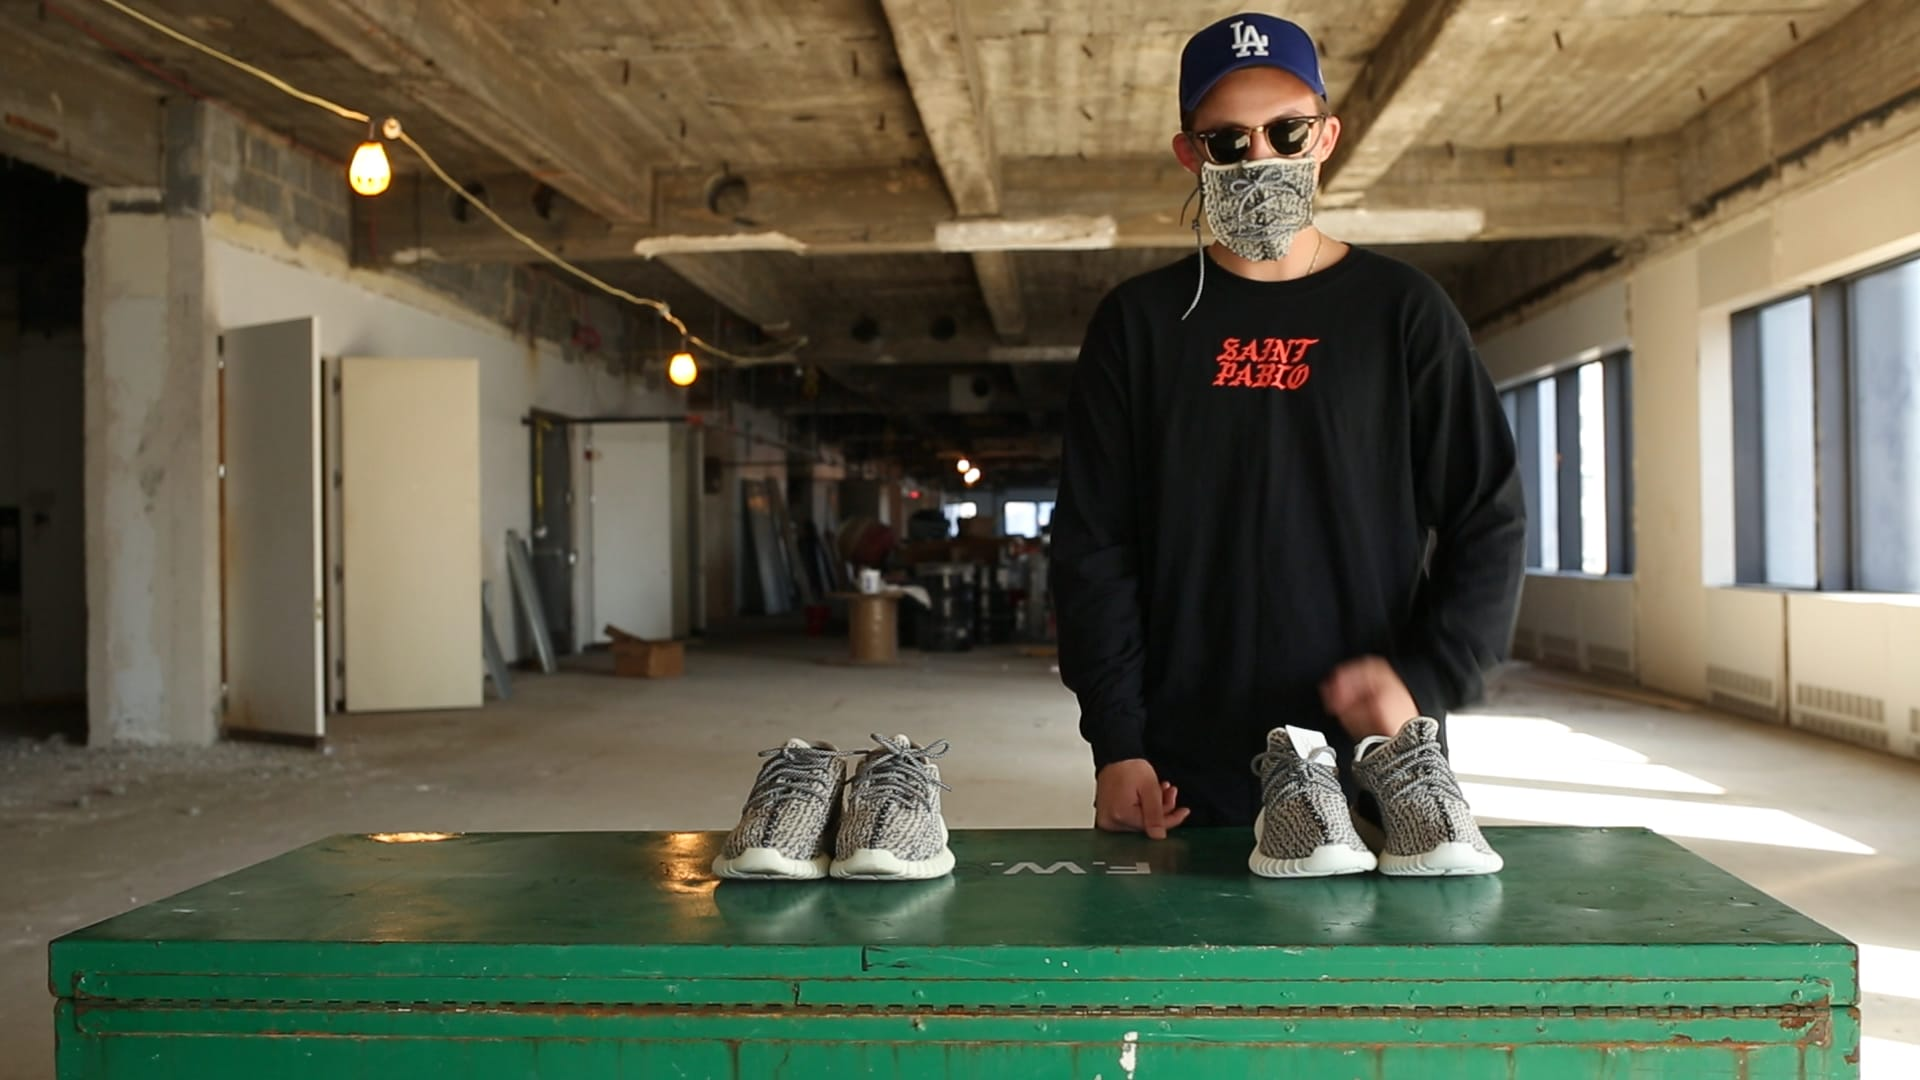 Meet the Teenager Whos Exposing Celebrities for Their Fake Yeezys 1920x1080